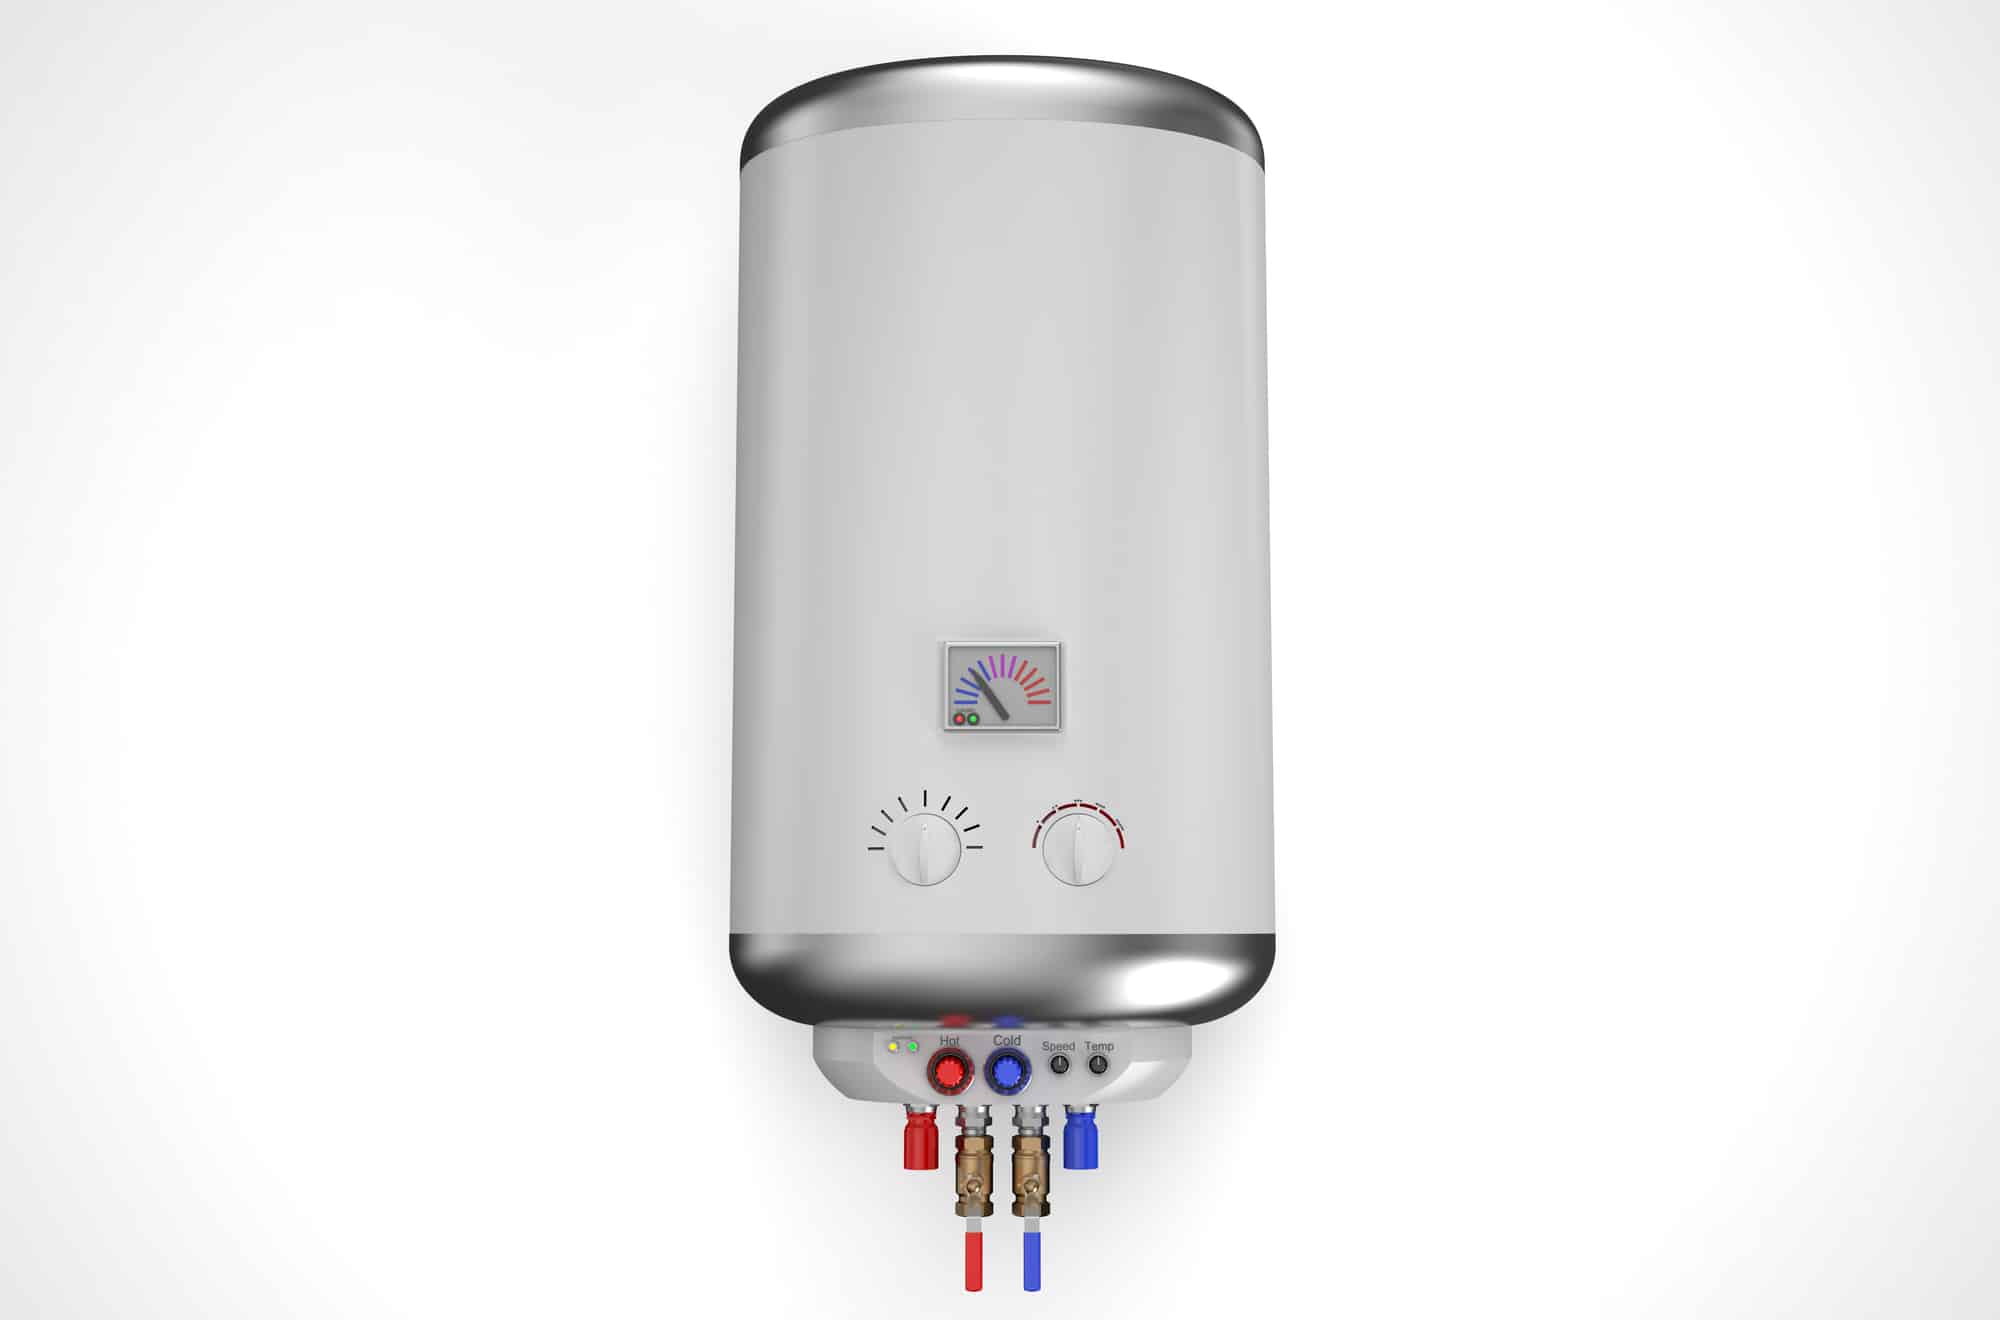 Rheem Electric Water Heater Installation See More On Manual Guide